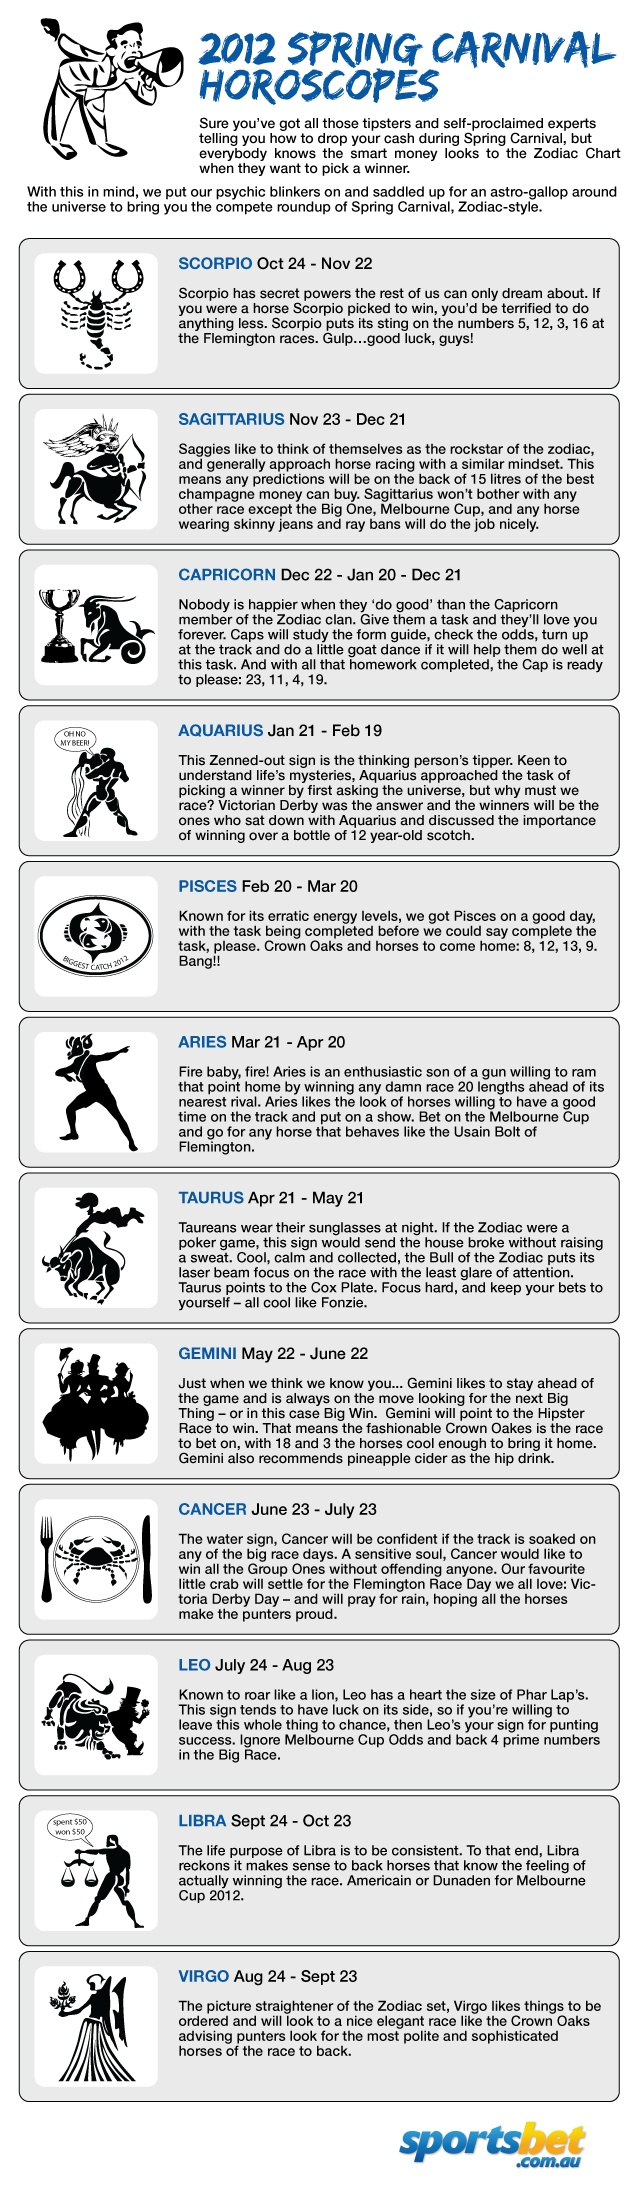 Spring Carnival Horoscopes